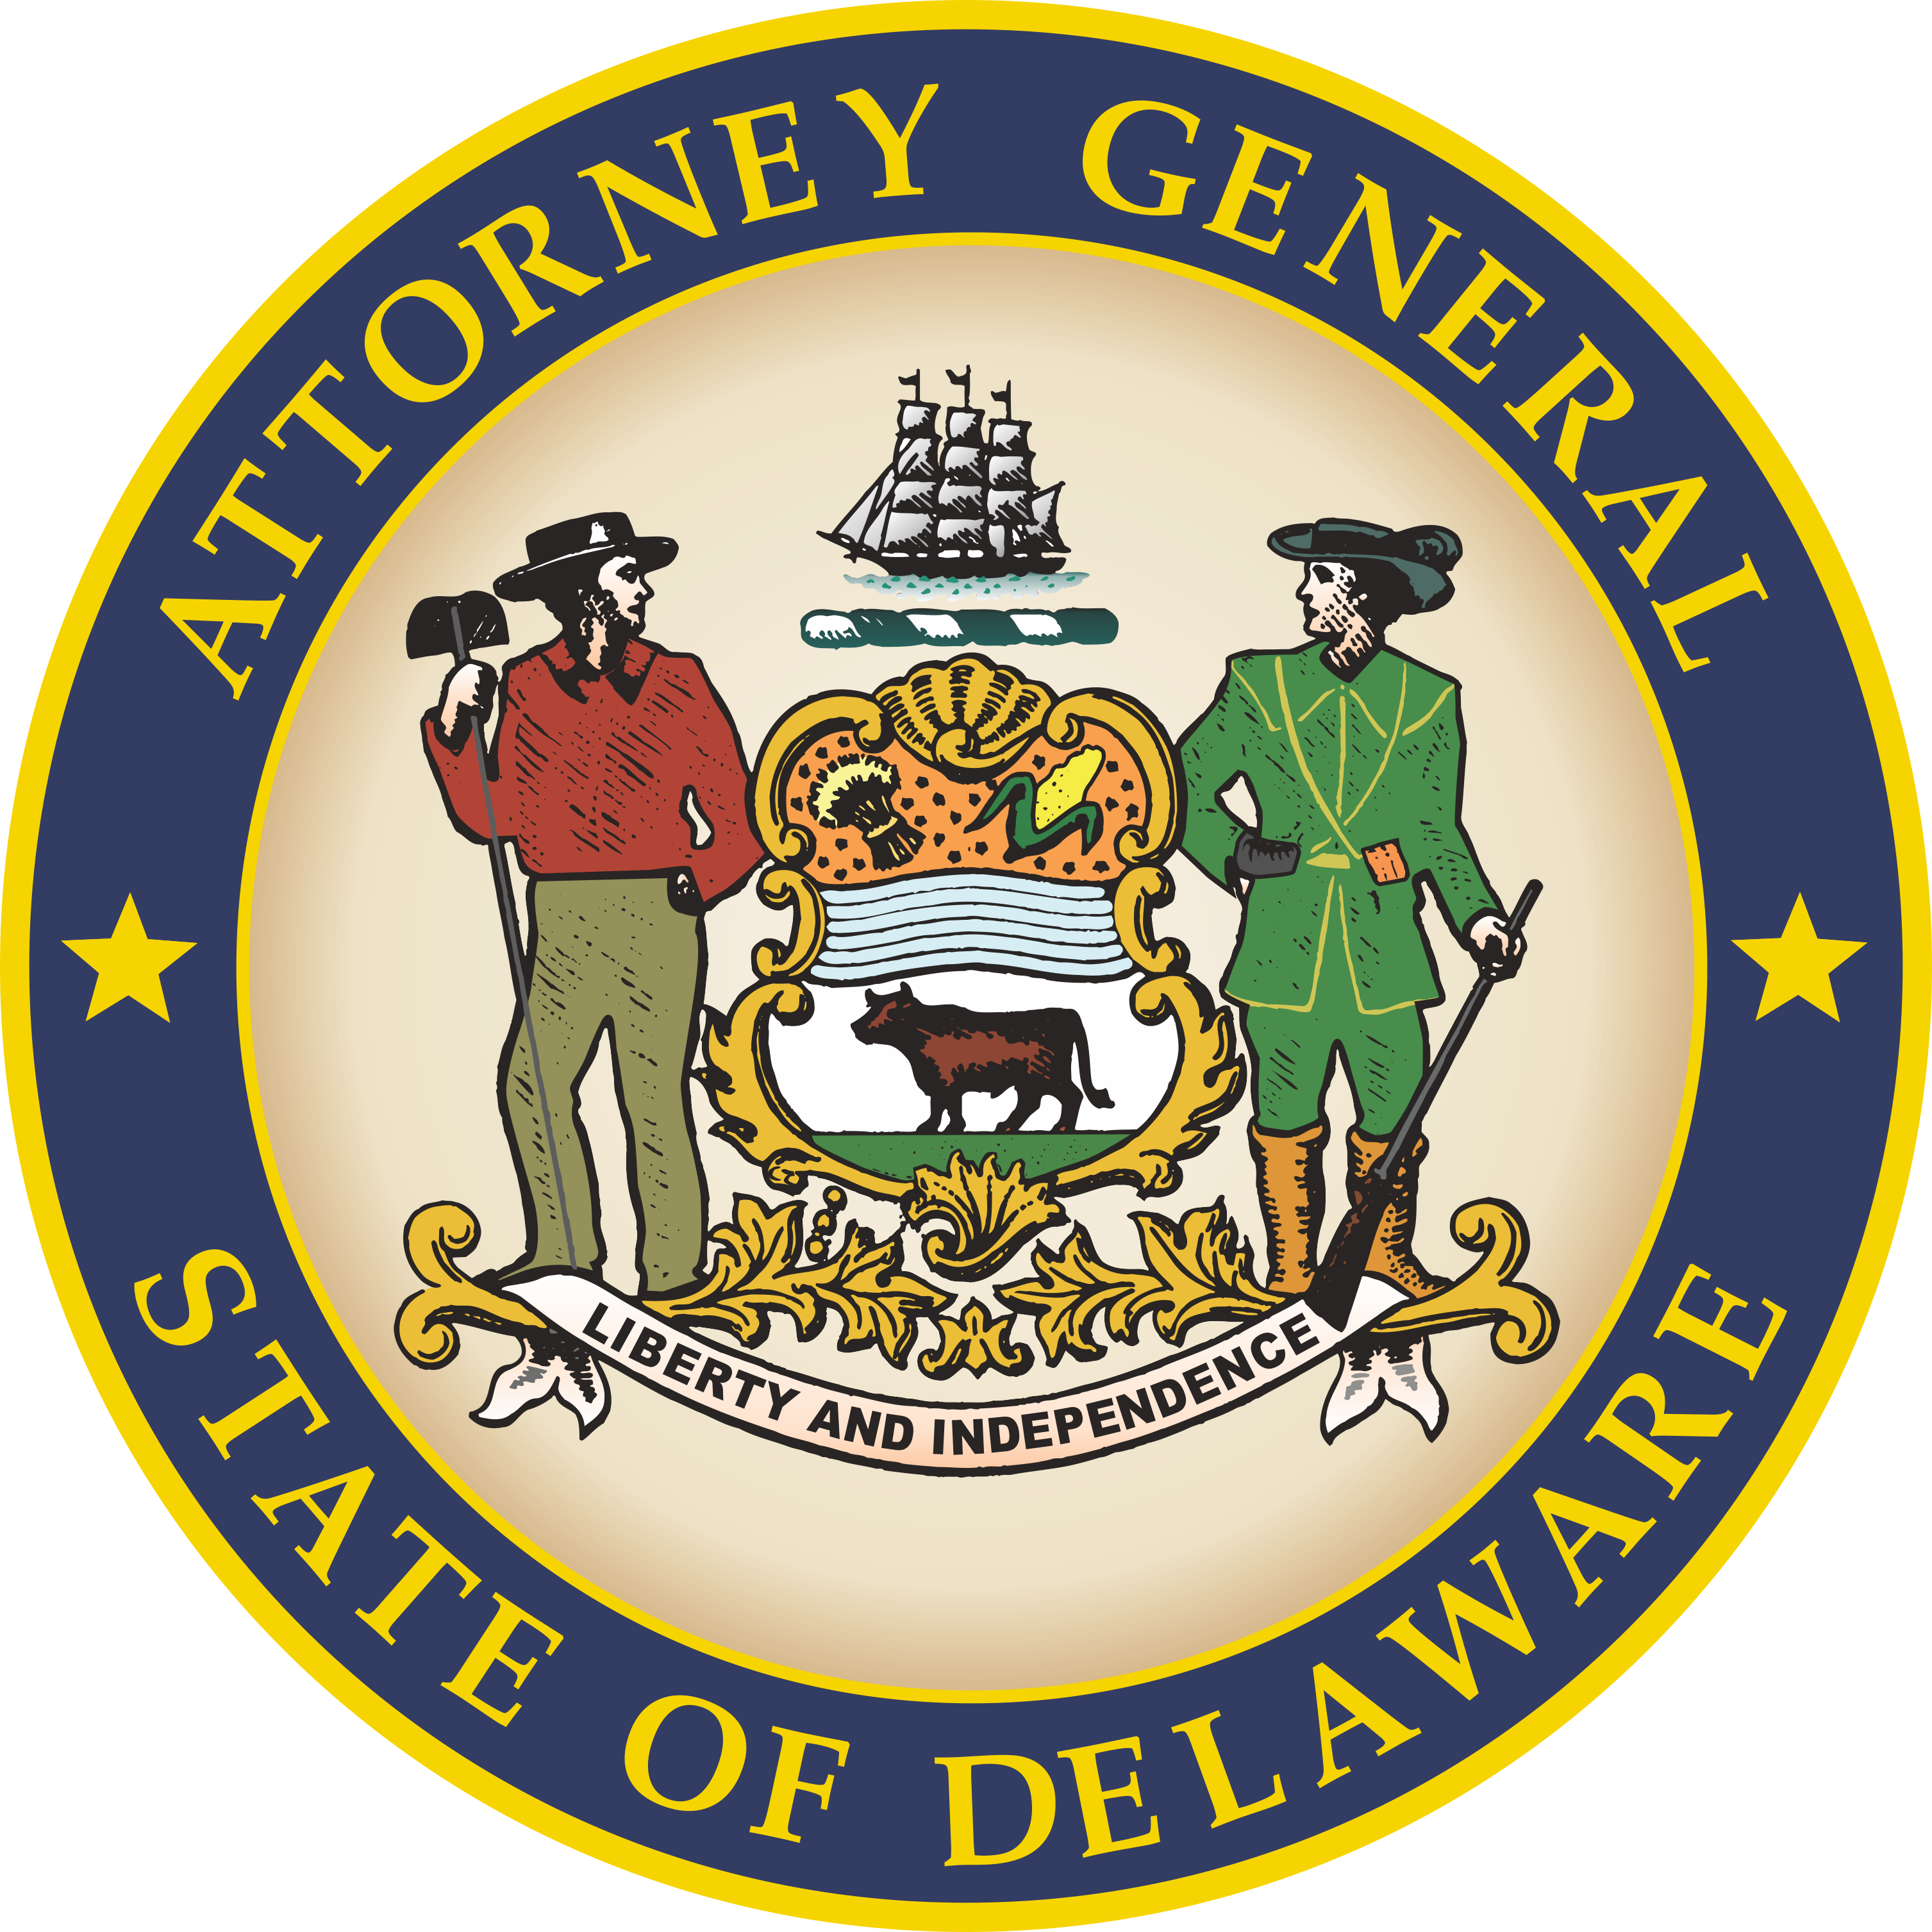 Former medical examiner pleads no contest to official misconduct former medical examiner pleads no contest to official misconduct state of delaware news buycottarizona